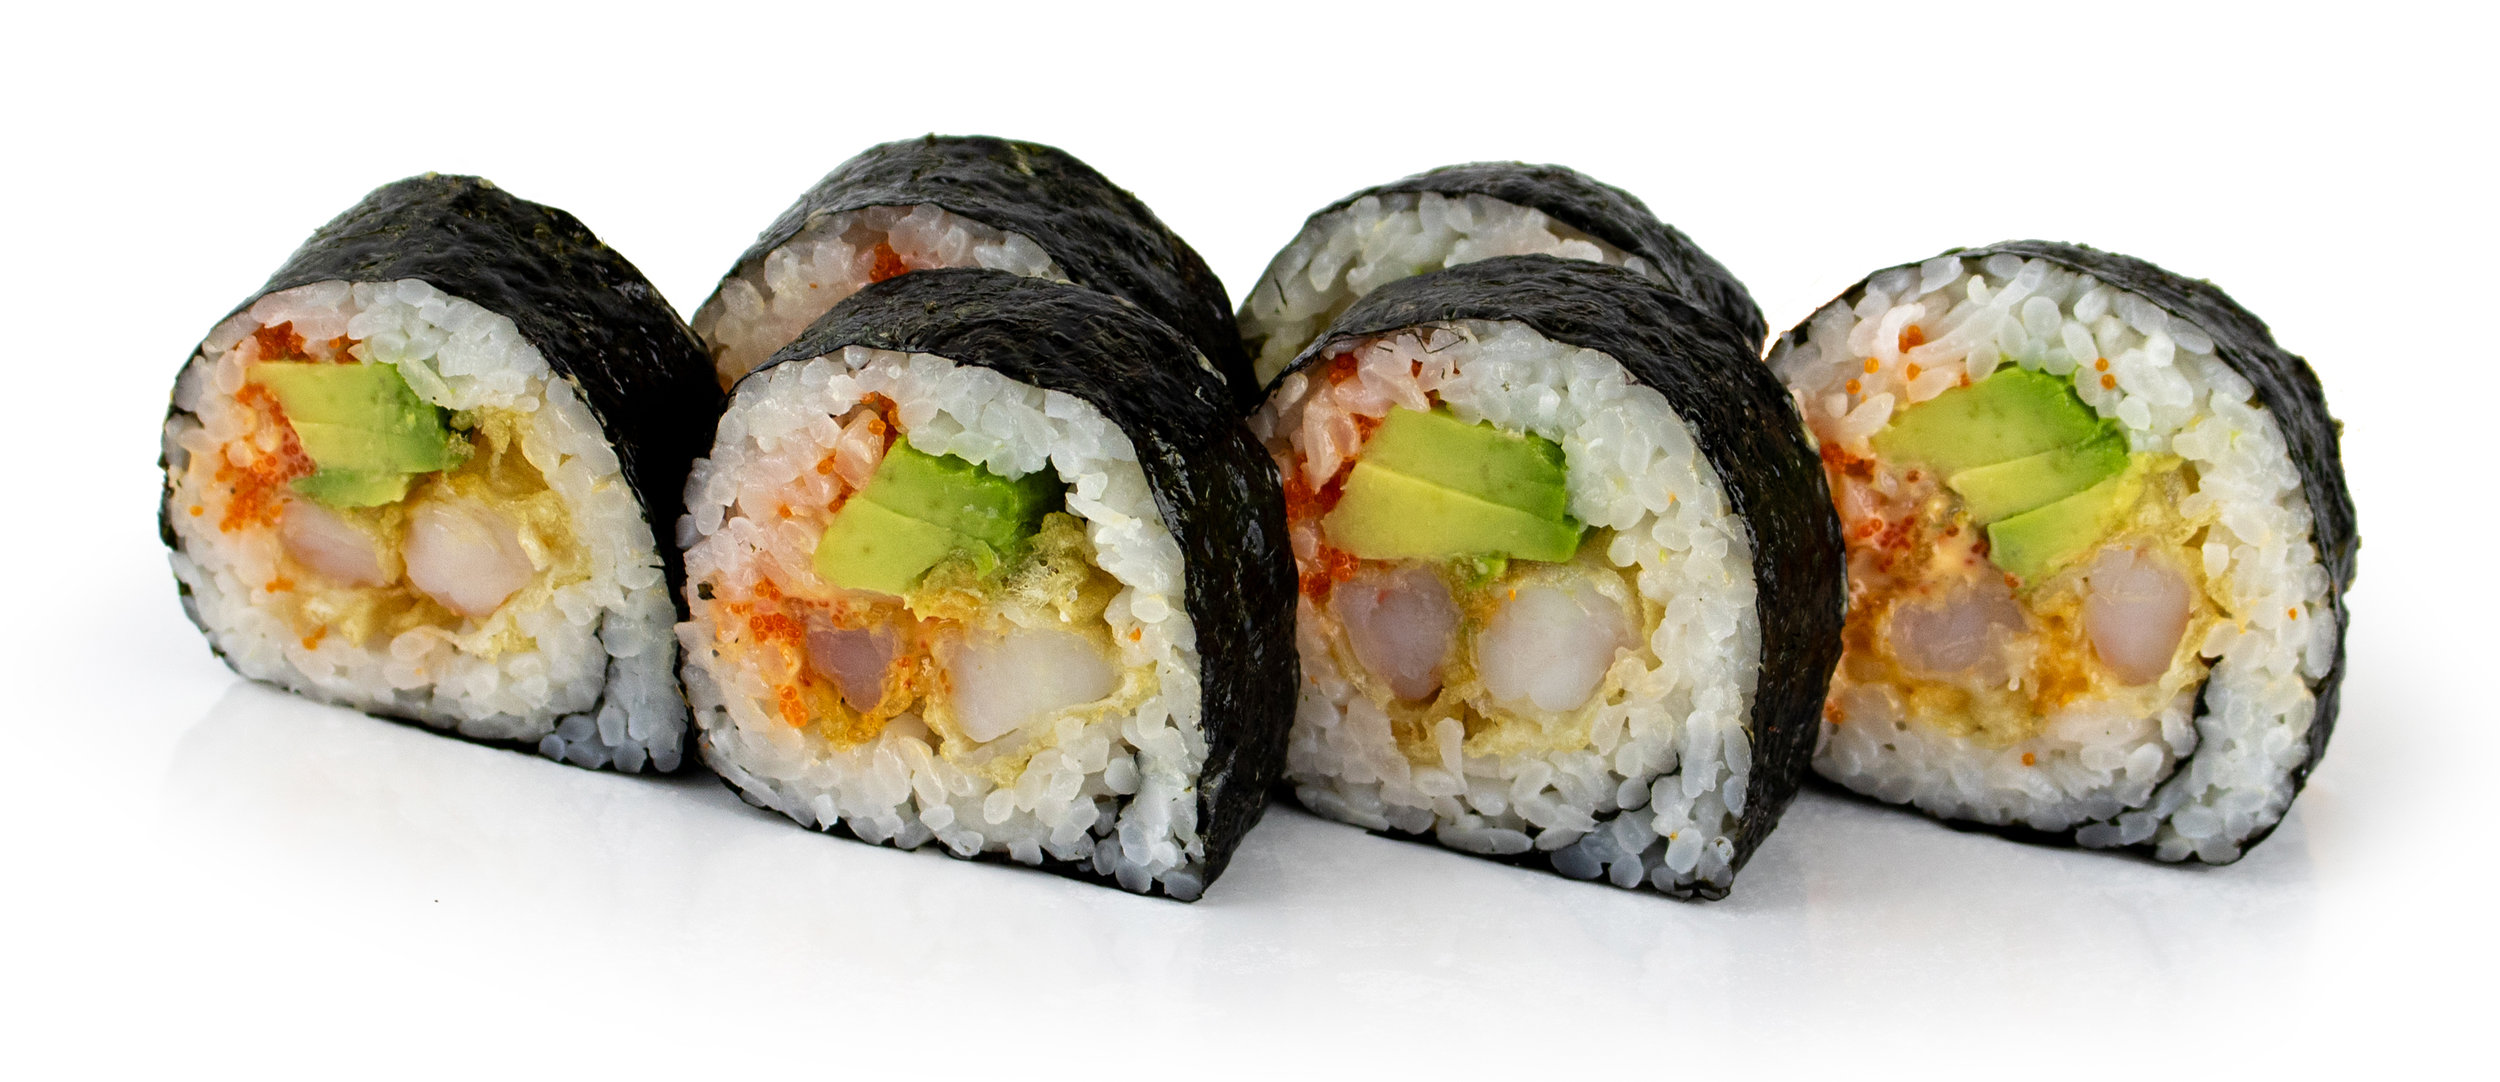 Spicy shrimp roll - The deep fried Tempura Shrimp goes so well with Momiji's house-made Spicy Sauce